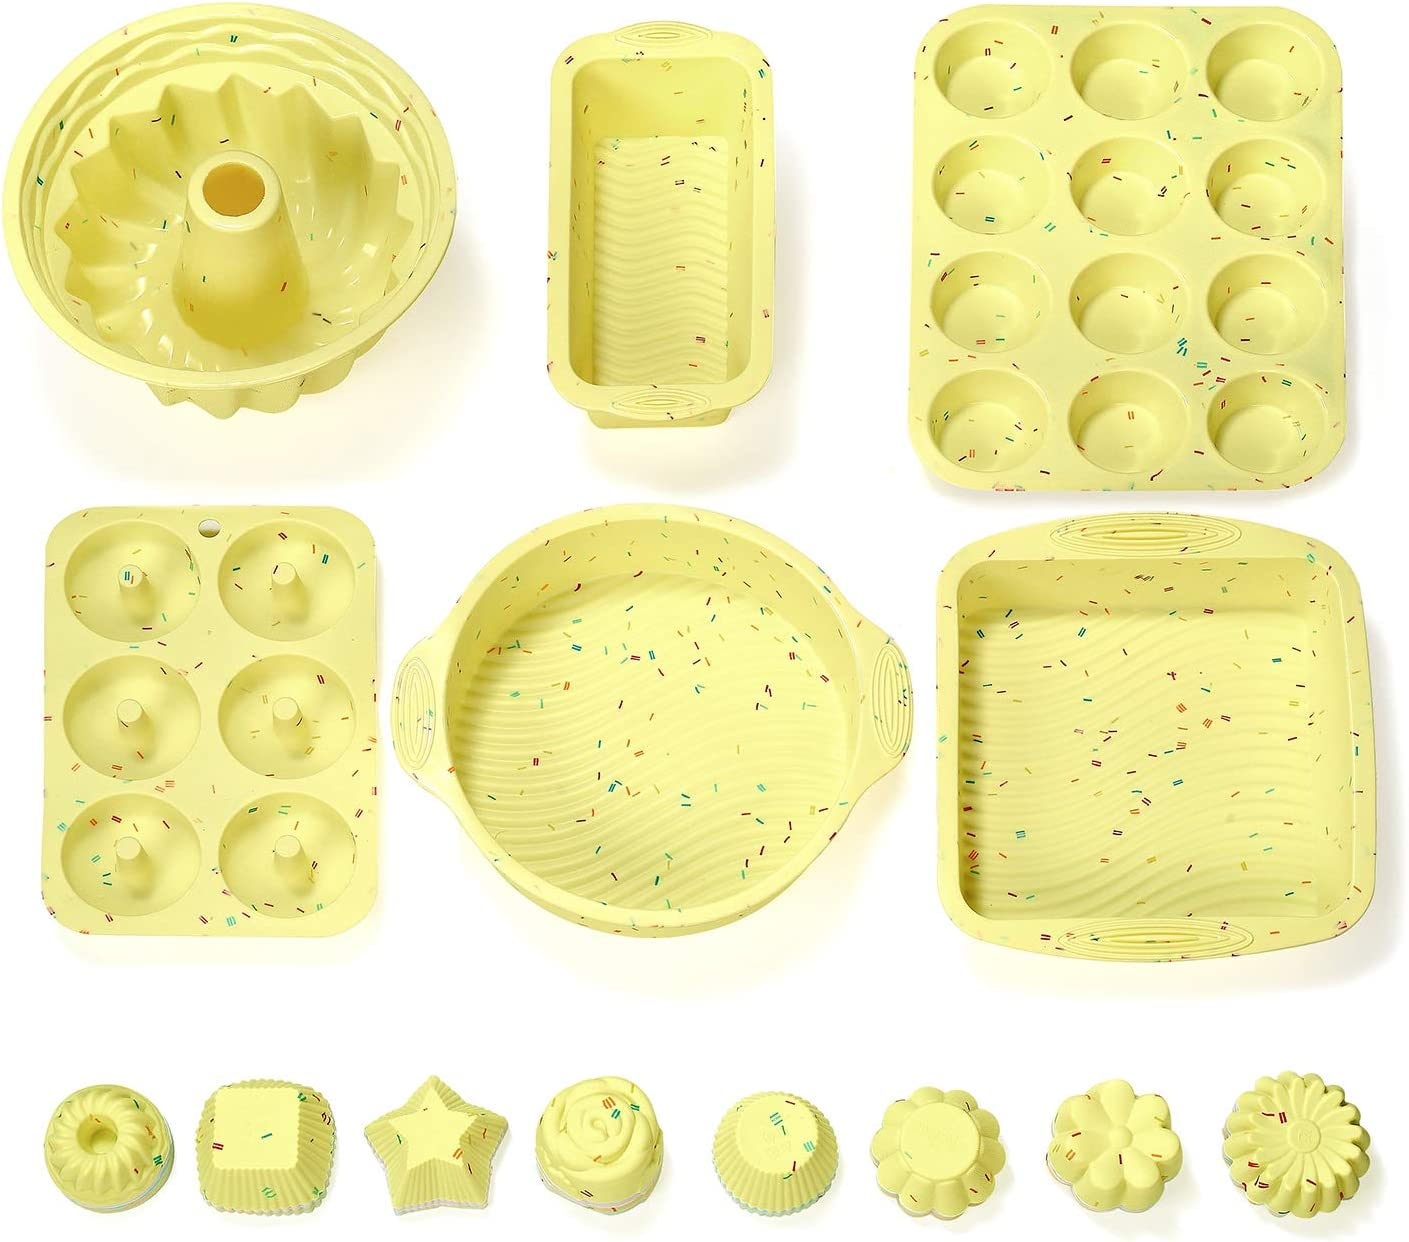 Including 8 Shapes Silicone Muffin Cups Cupcake Molds 40PCS Silicone Cupcake Baking Cups Set Silicone Baking Cups For Baking Round, Square, Star, Sunflower, Rose, Chrysanthemum, Flower, Pumpkin